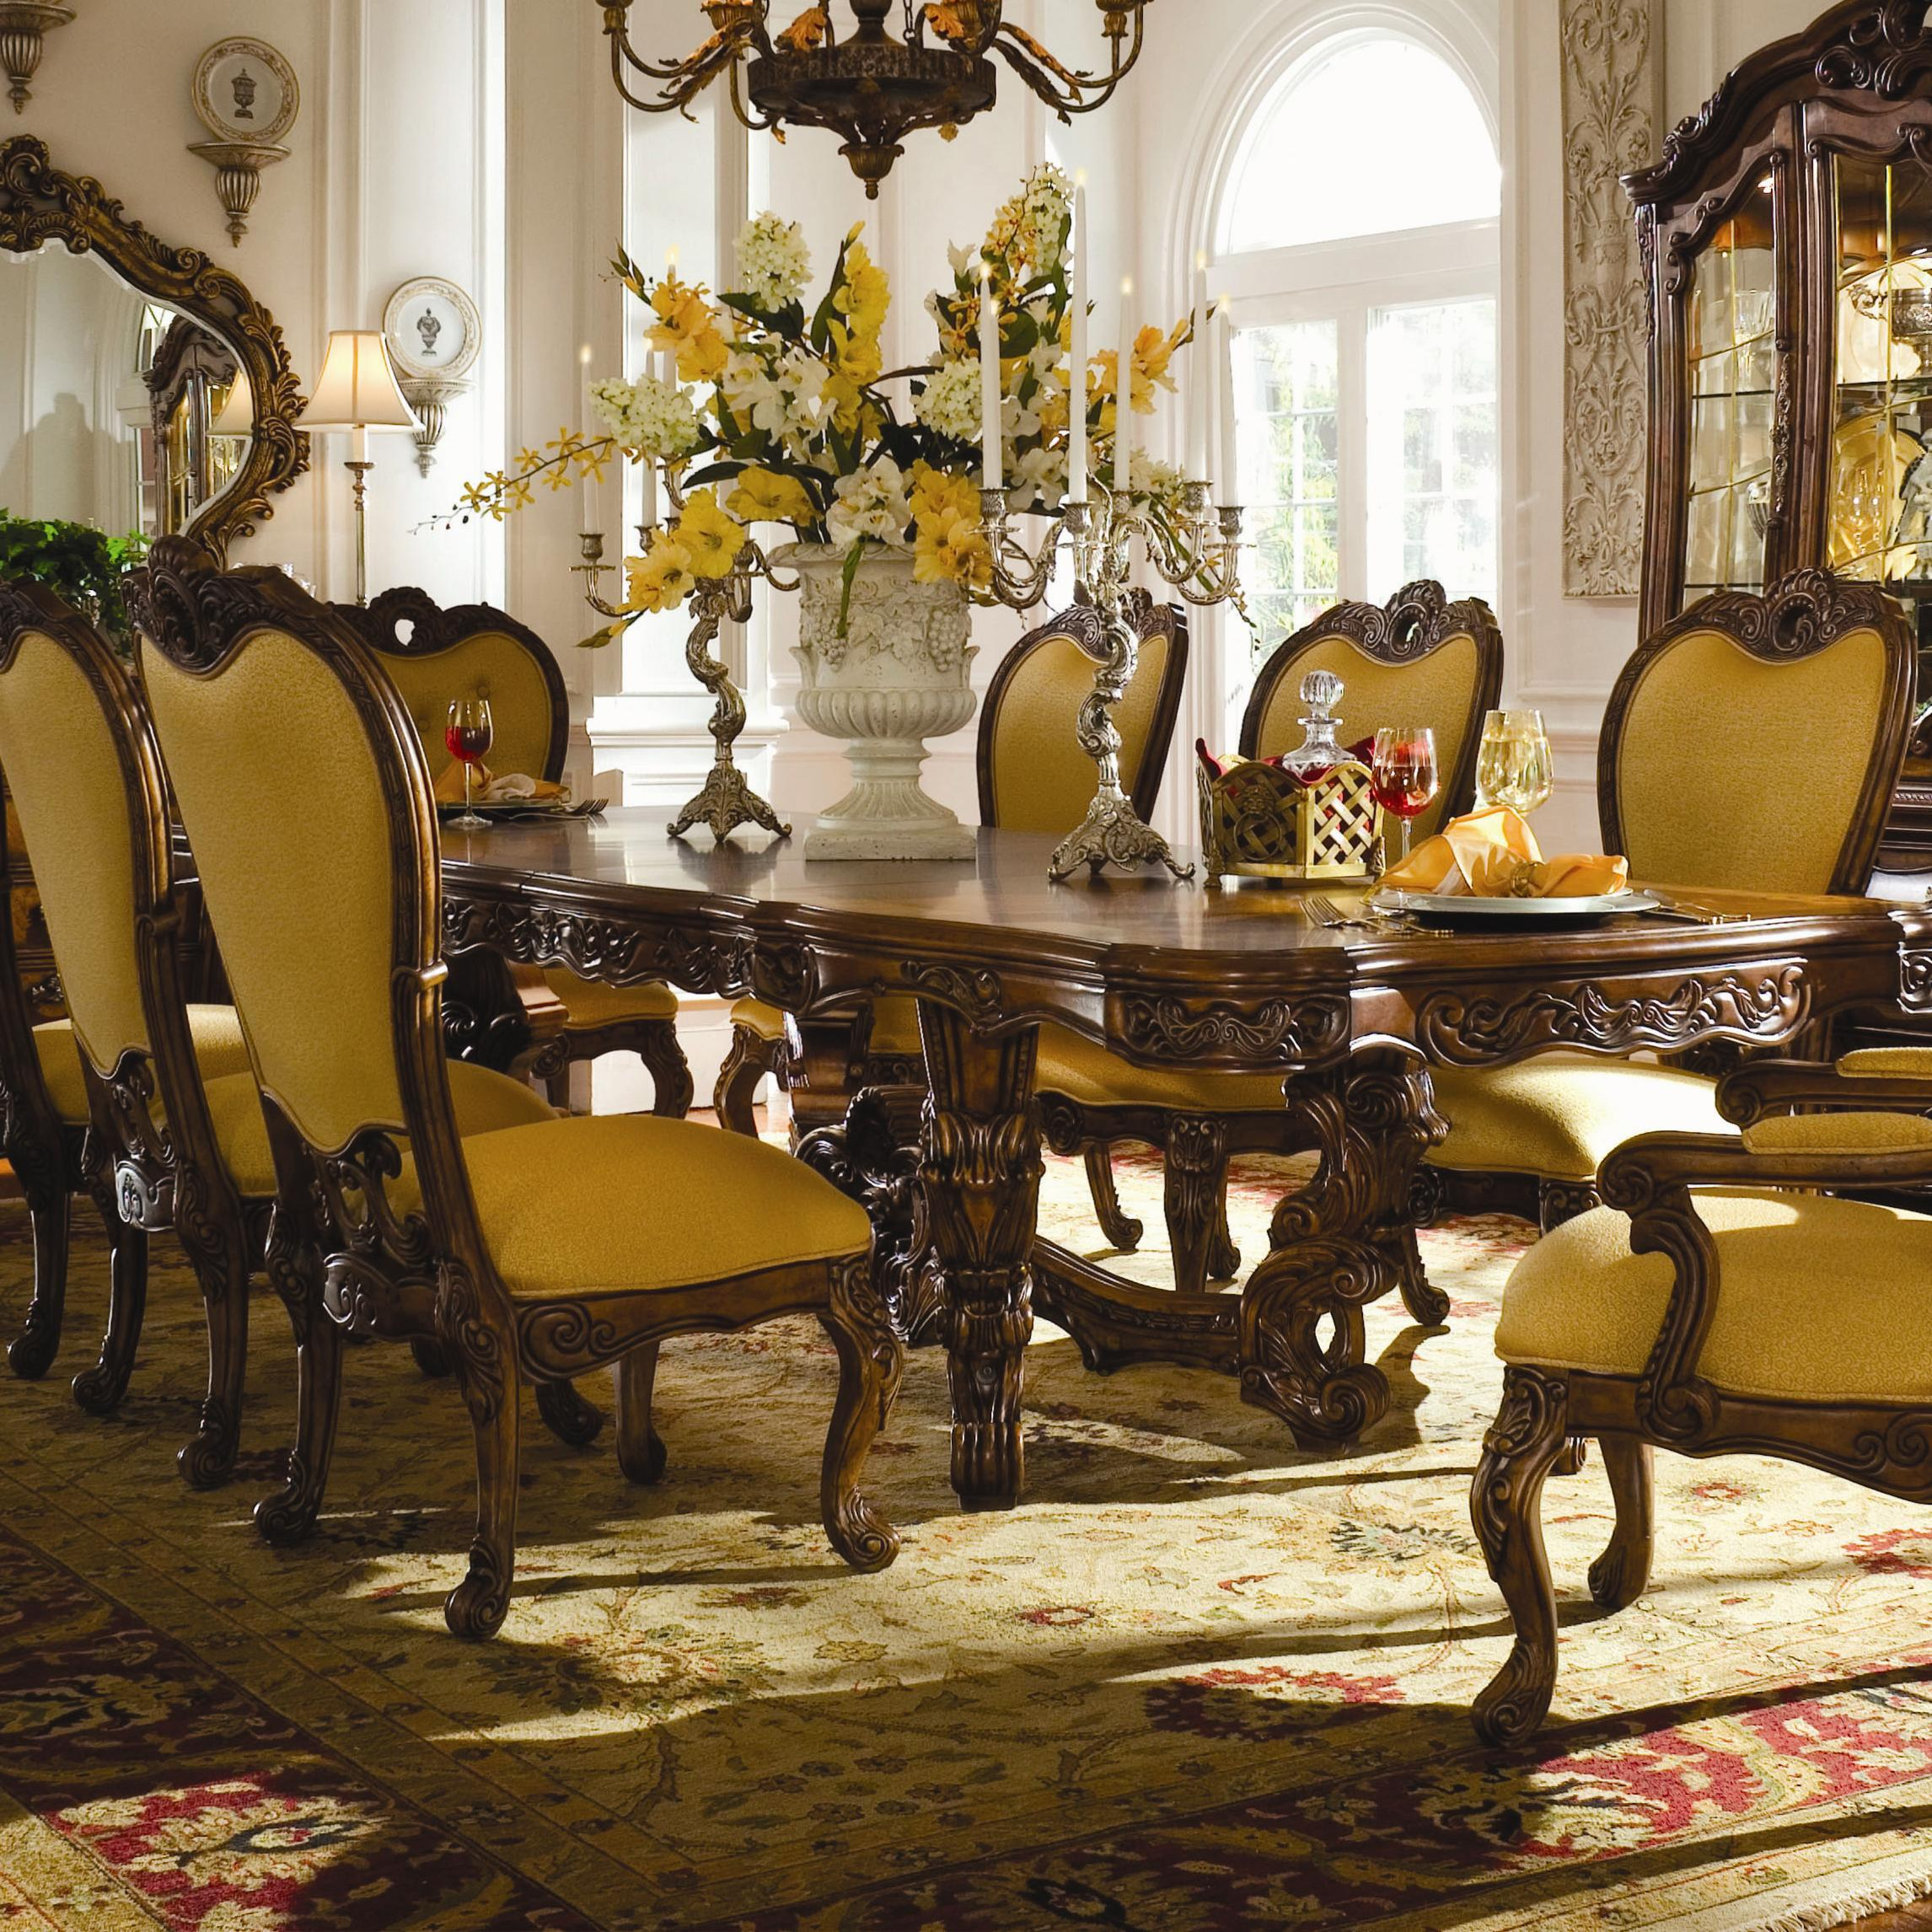 ornate dining room table and chairs. michael amini palais royale dining table - item number: 71002-35 ornate room and chairs